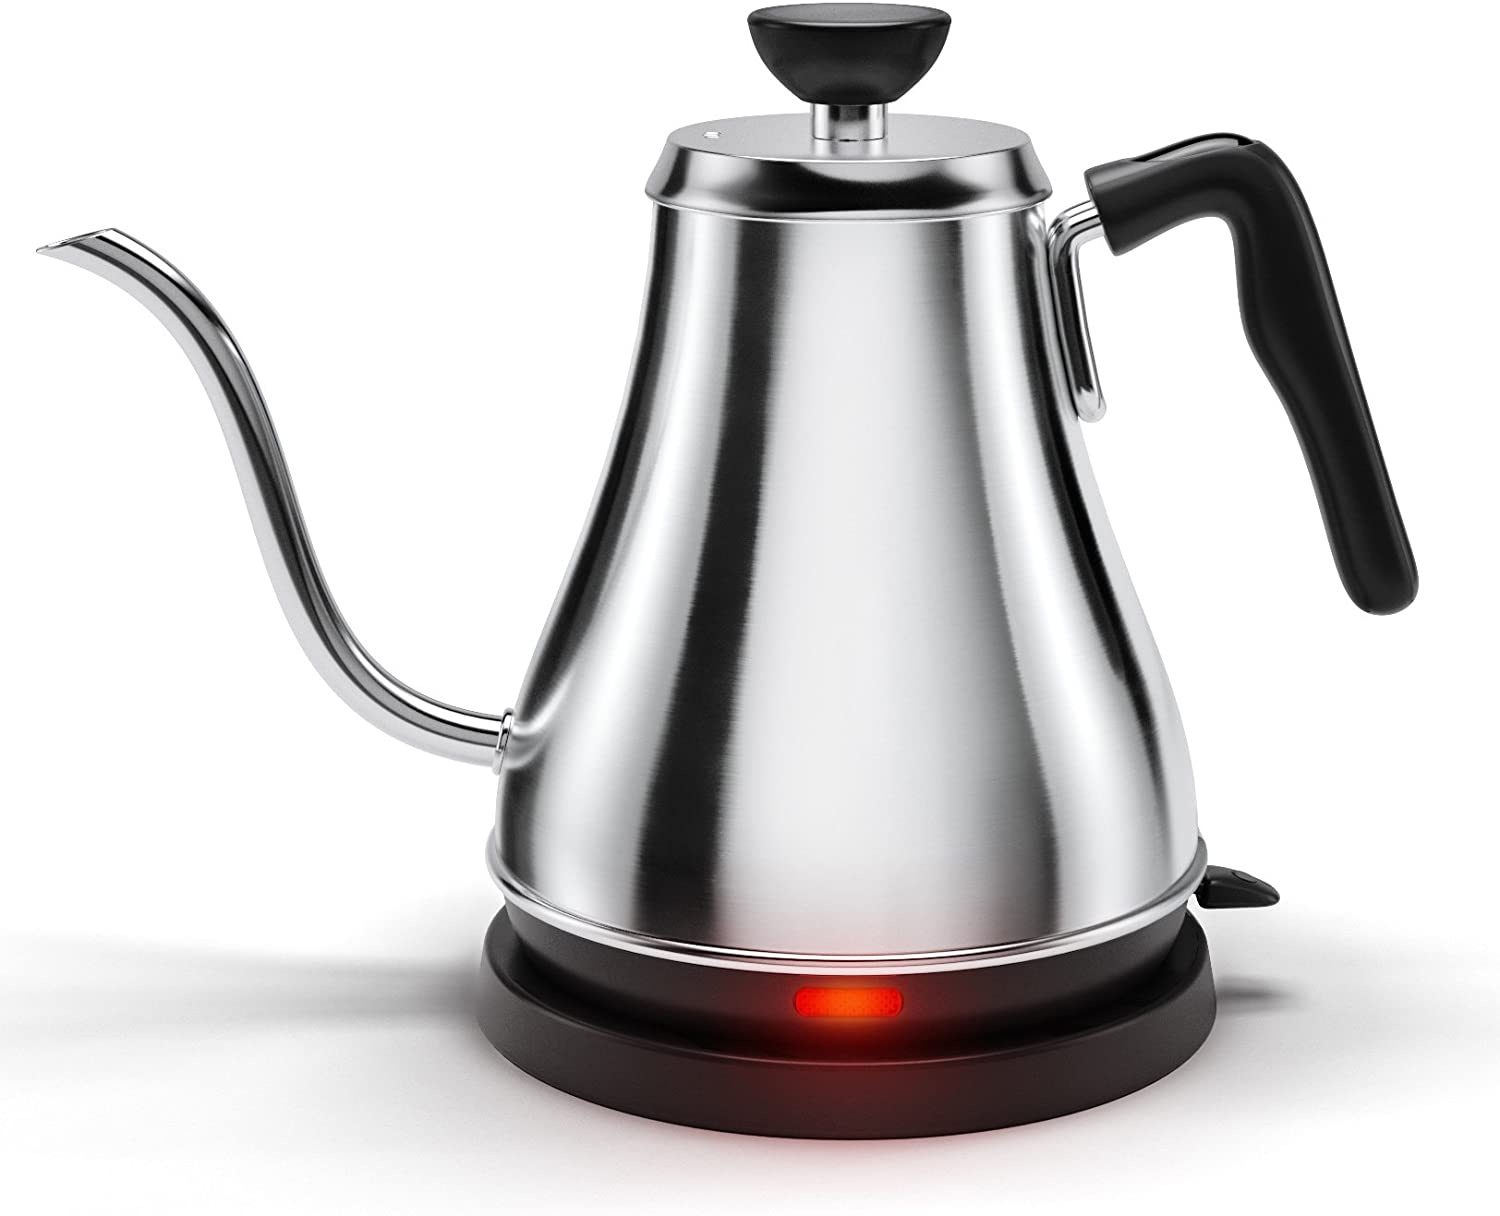 Electric Gooseneck Kettle – Rapid Boil Electric Kettle Water Heater for Pour Over Coffee and Tea – 1L Water Boiler Tea Kettle Teapot Dripper